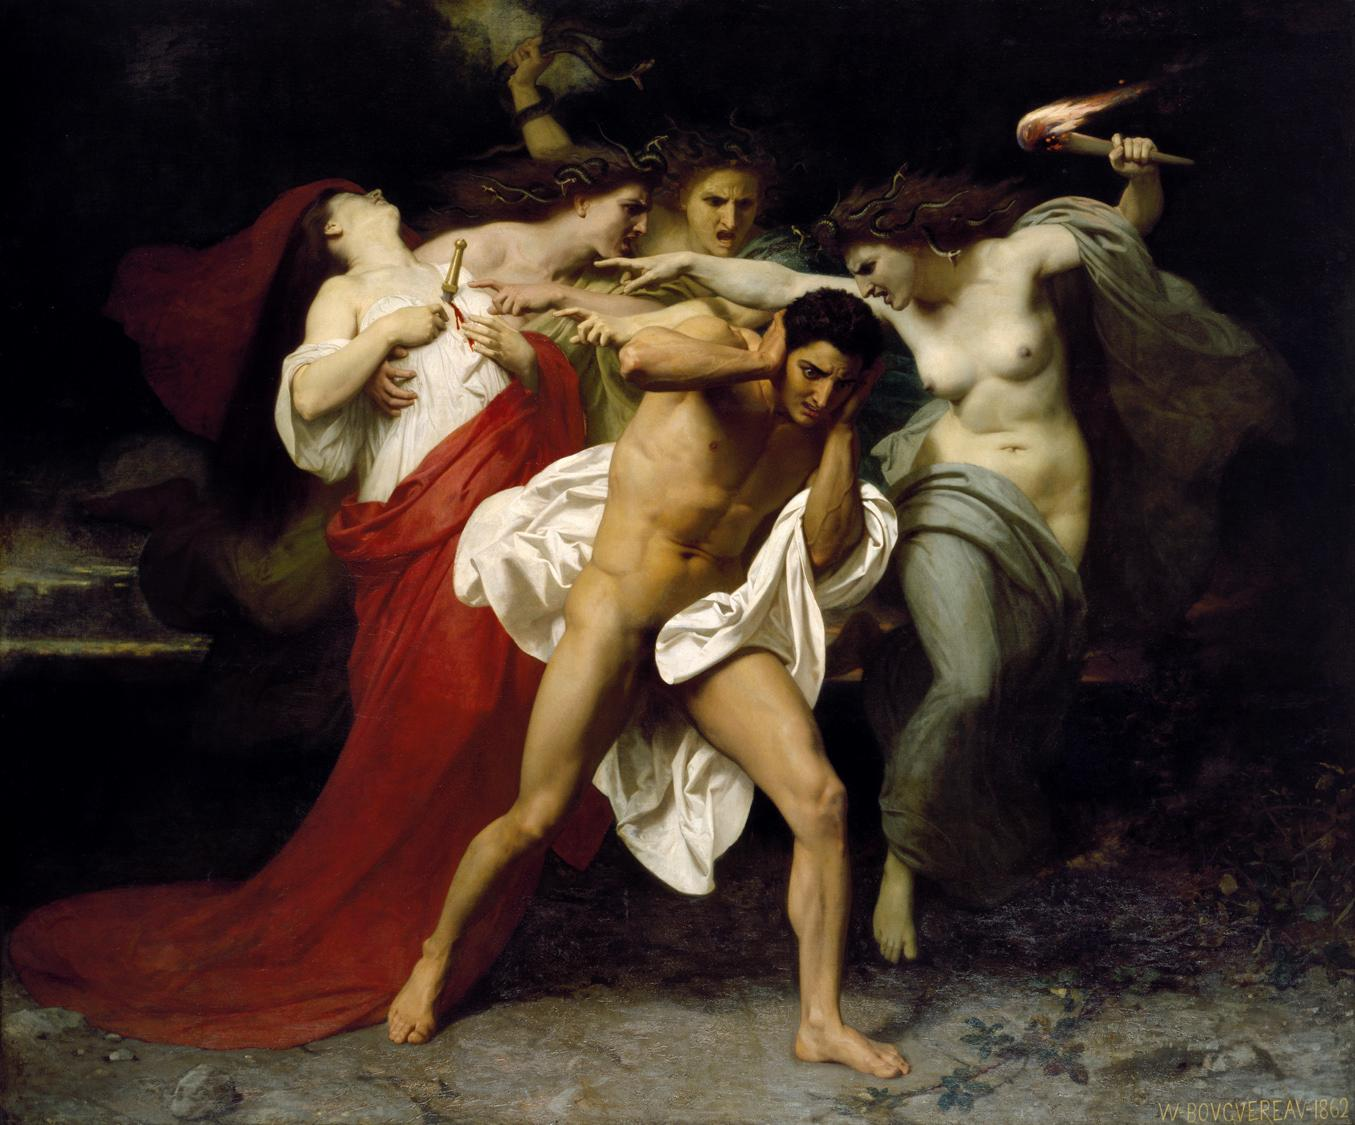 """William-Adolph Bouguereau's """"Orestes Pursued by the Furies"""" (1862). oil on canvas. Chrysler Museum of Art. We bet Sen. Mitch McConnell can relate."""